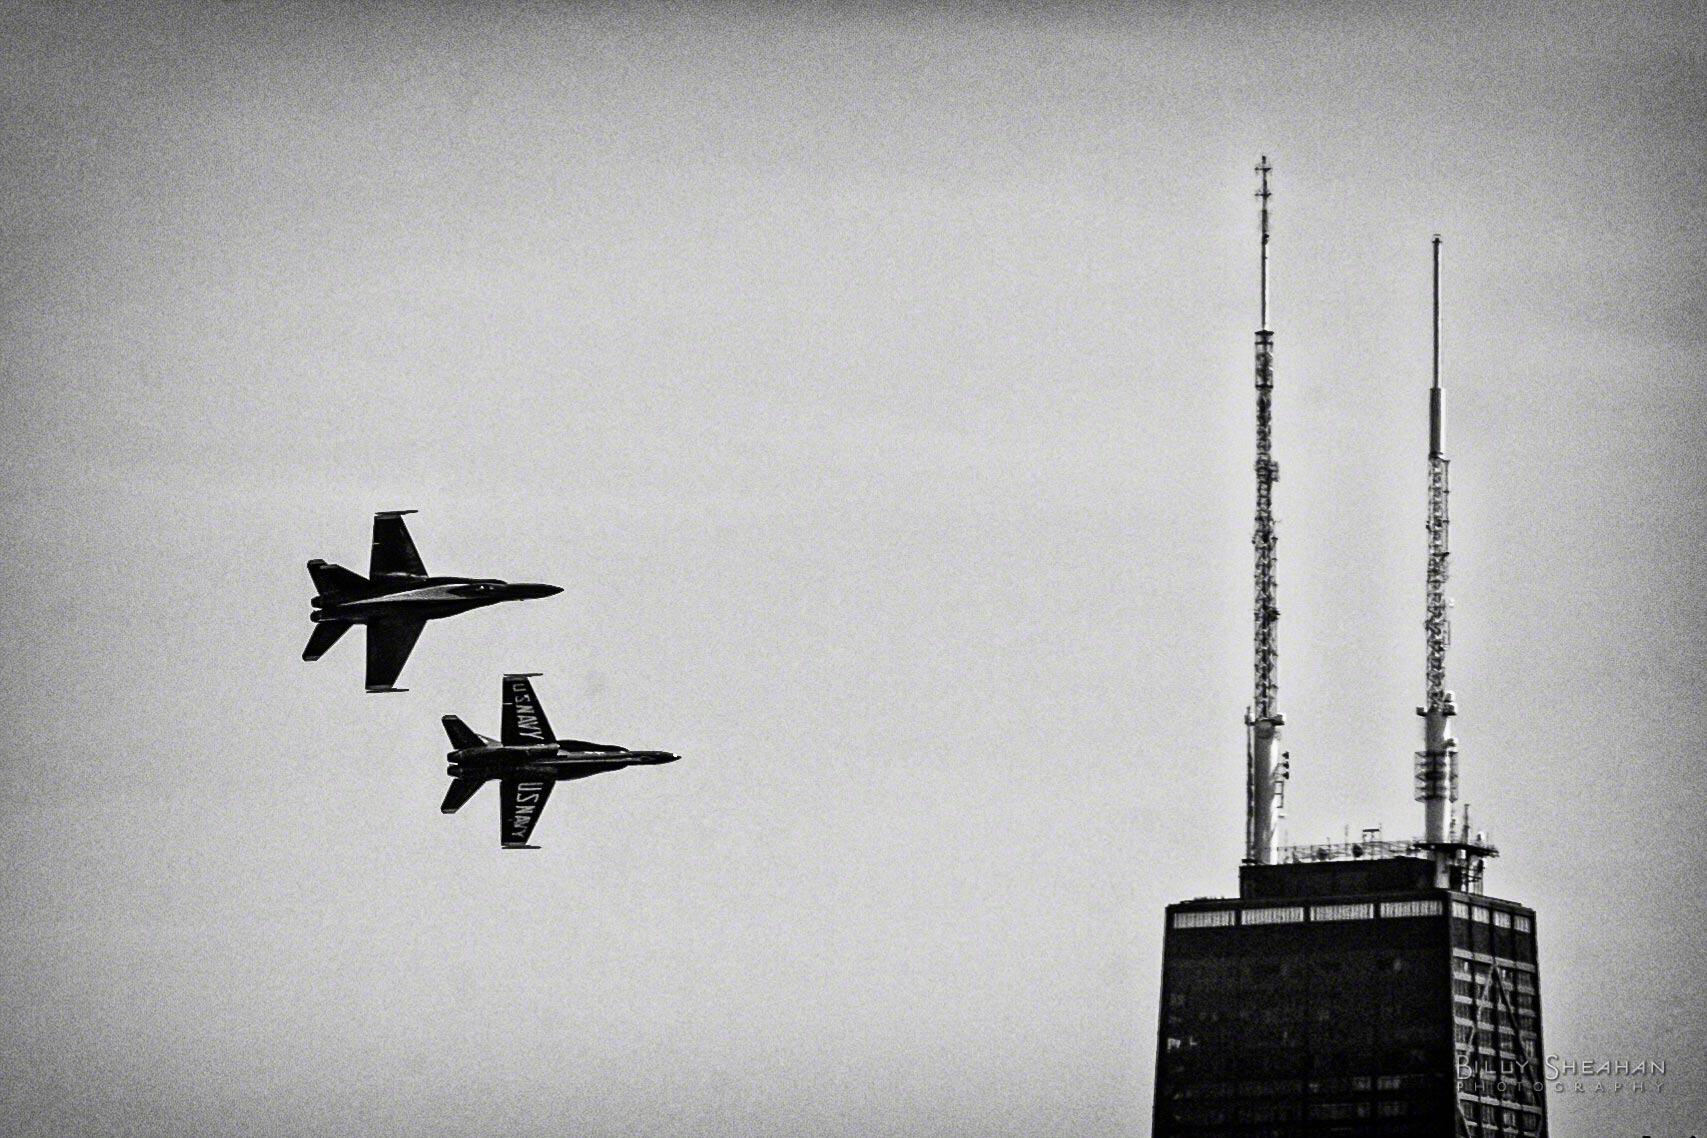 Blue_Angels_Hancock_Building_Chicago_AirShow_18Aug2012_0157_BW_D.jpg